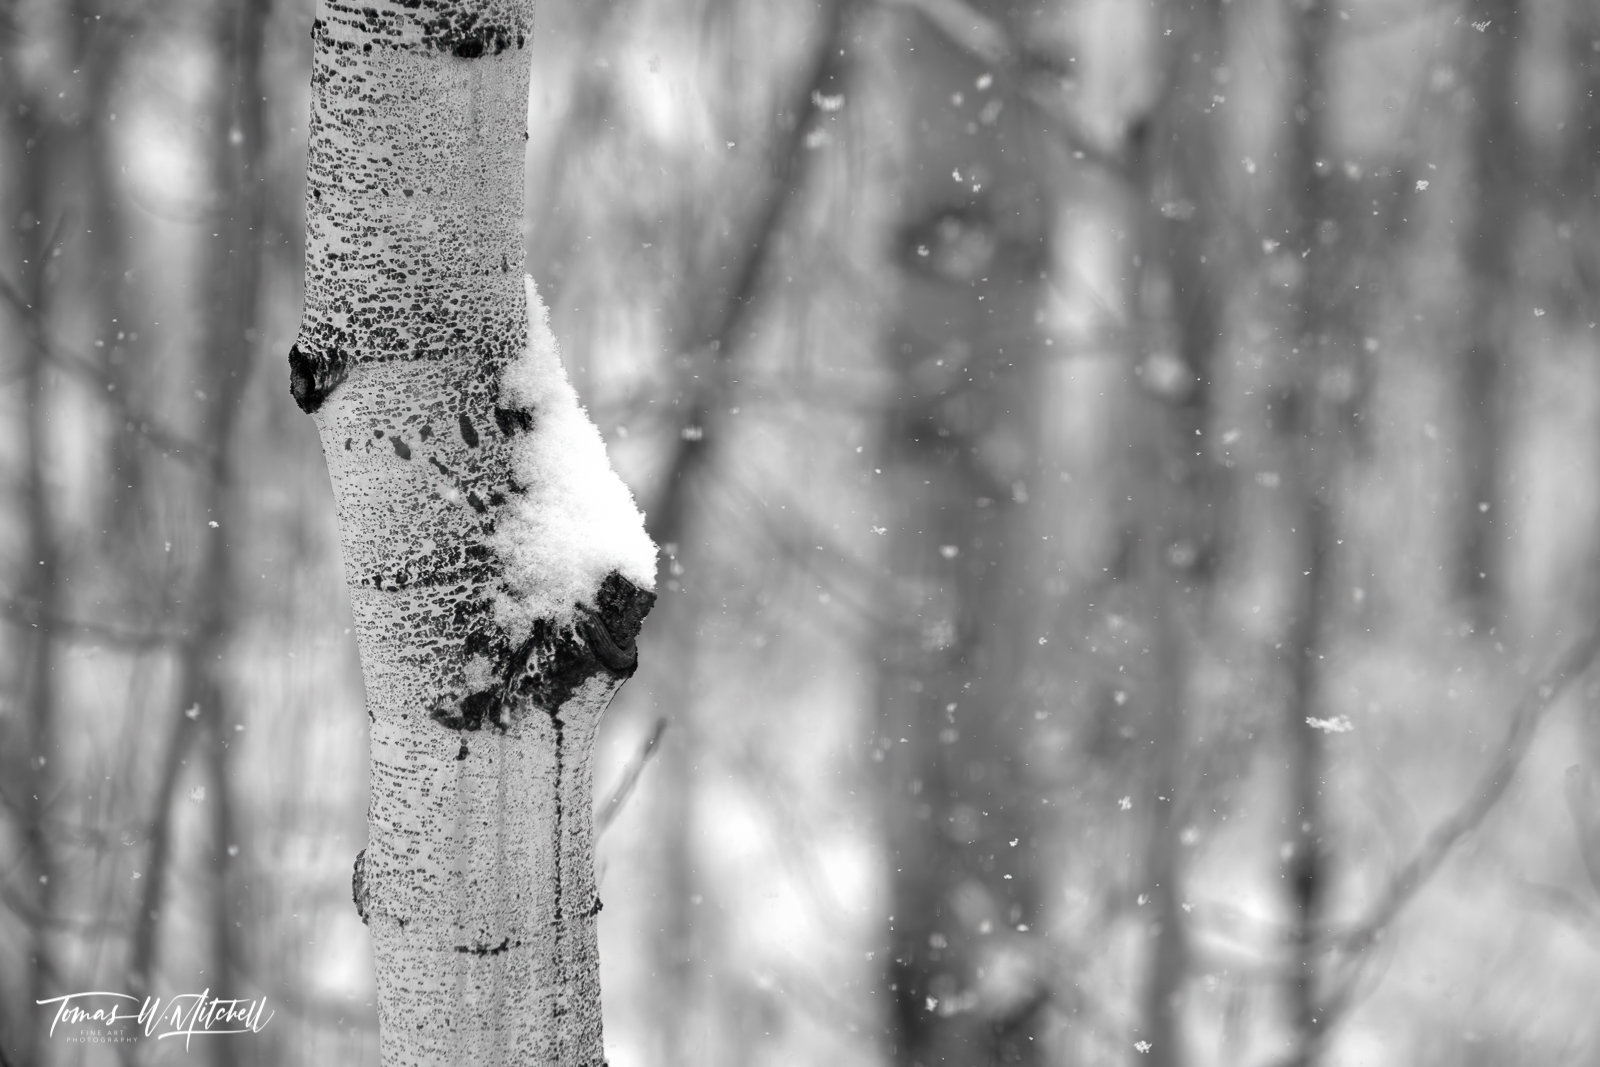 UINTA-WASATCH-CACHE NATIONAL FOREST, UTAH, limited edition, fine art, prints, snowstorm, aspen trees, snow, snowflakes, photograph black and white, photo